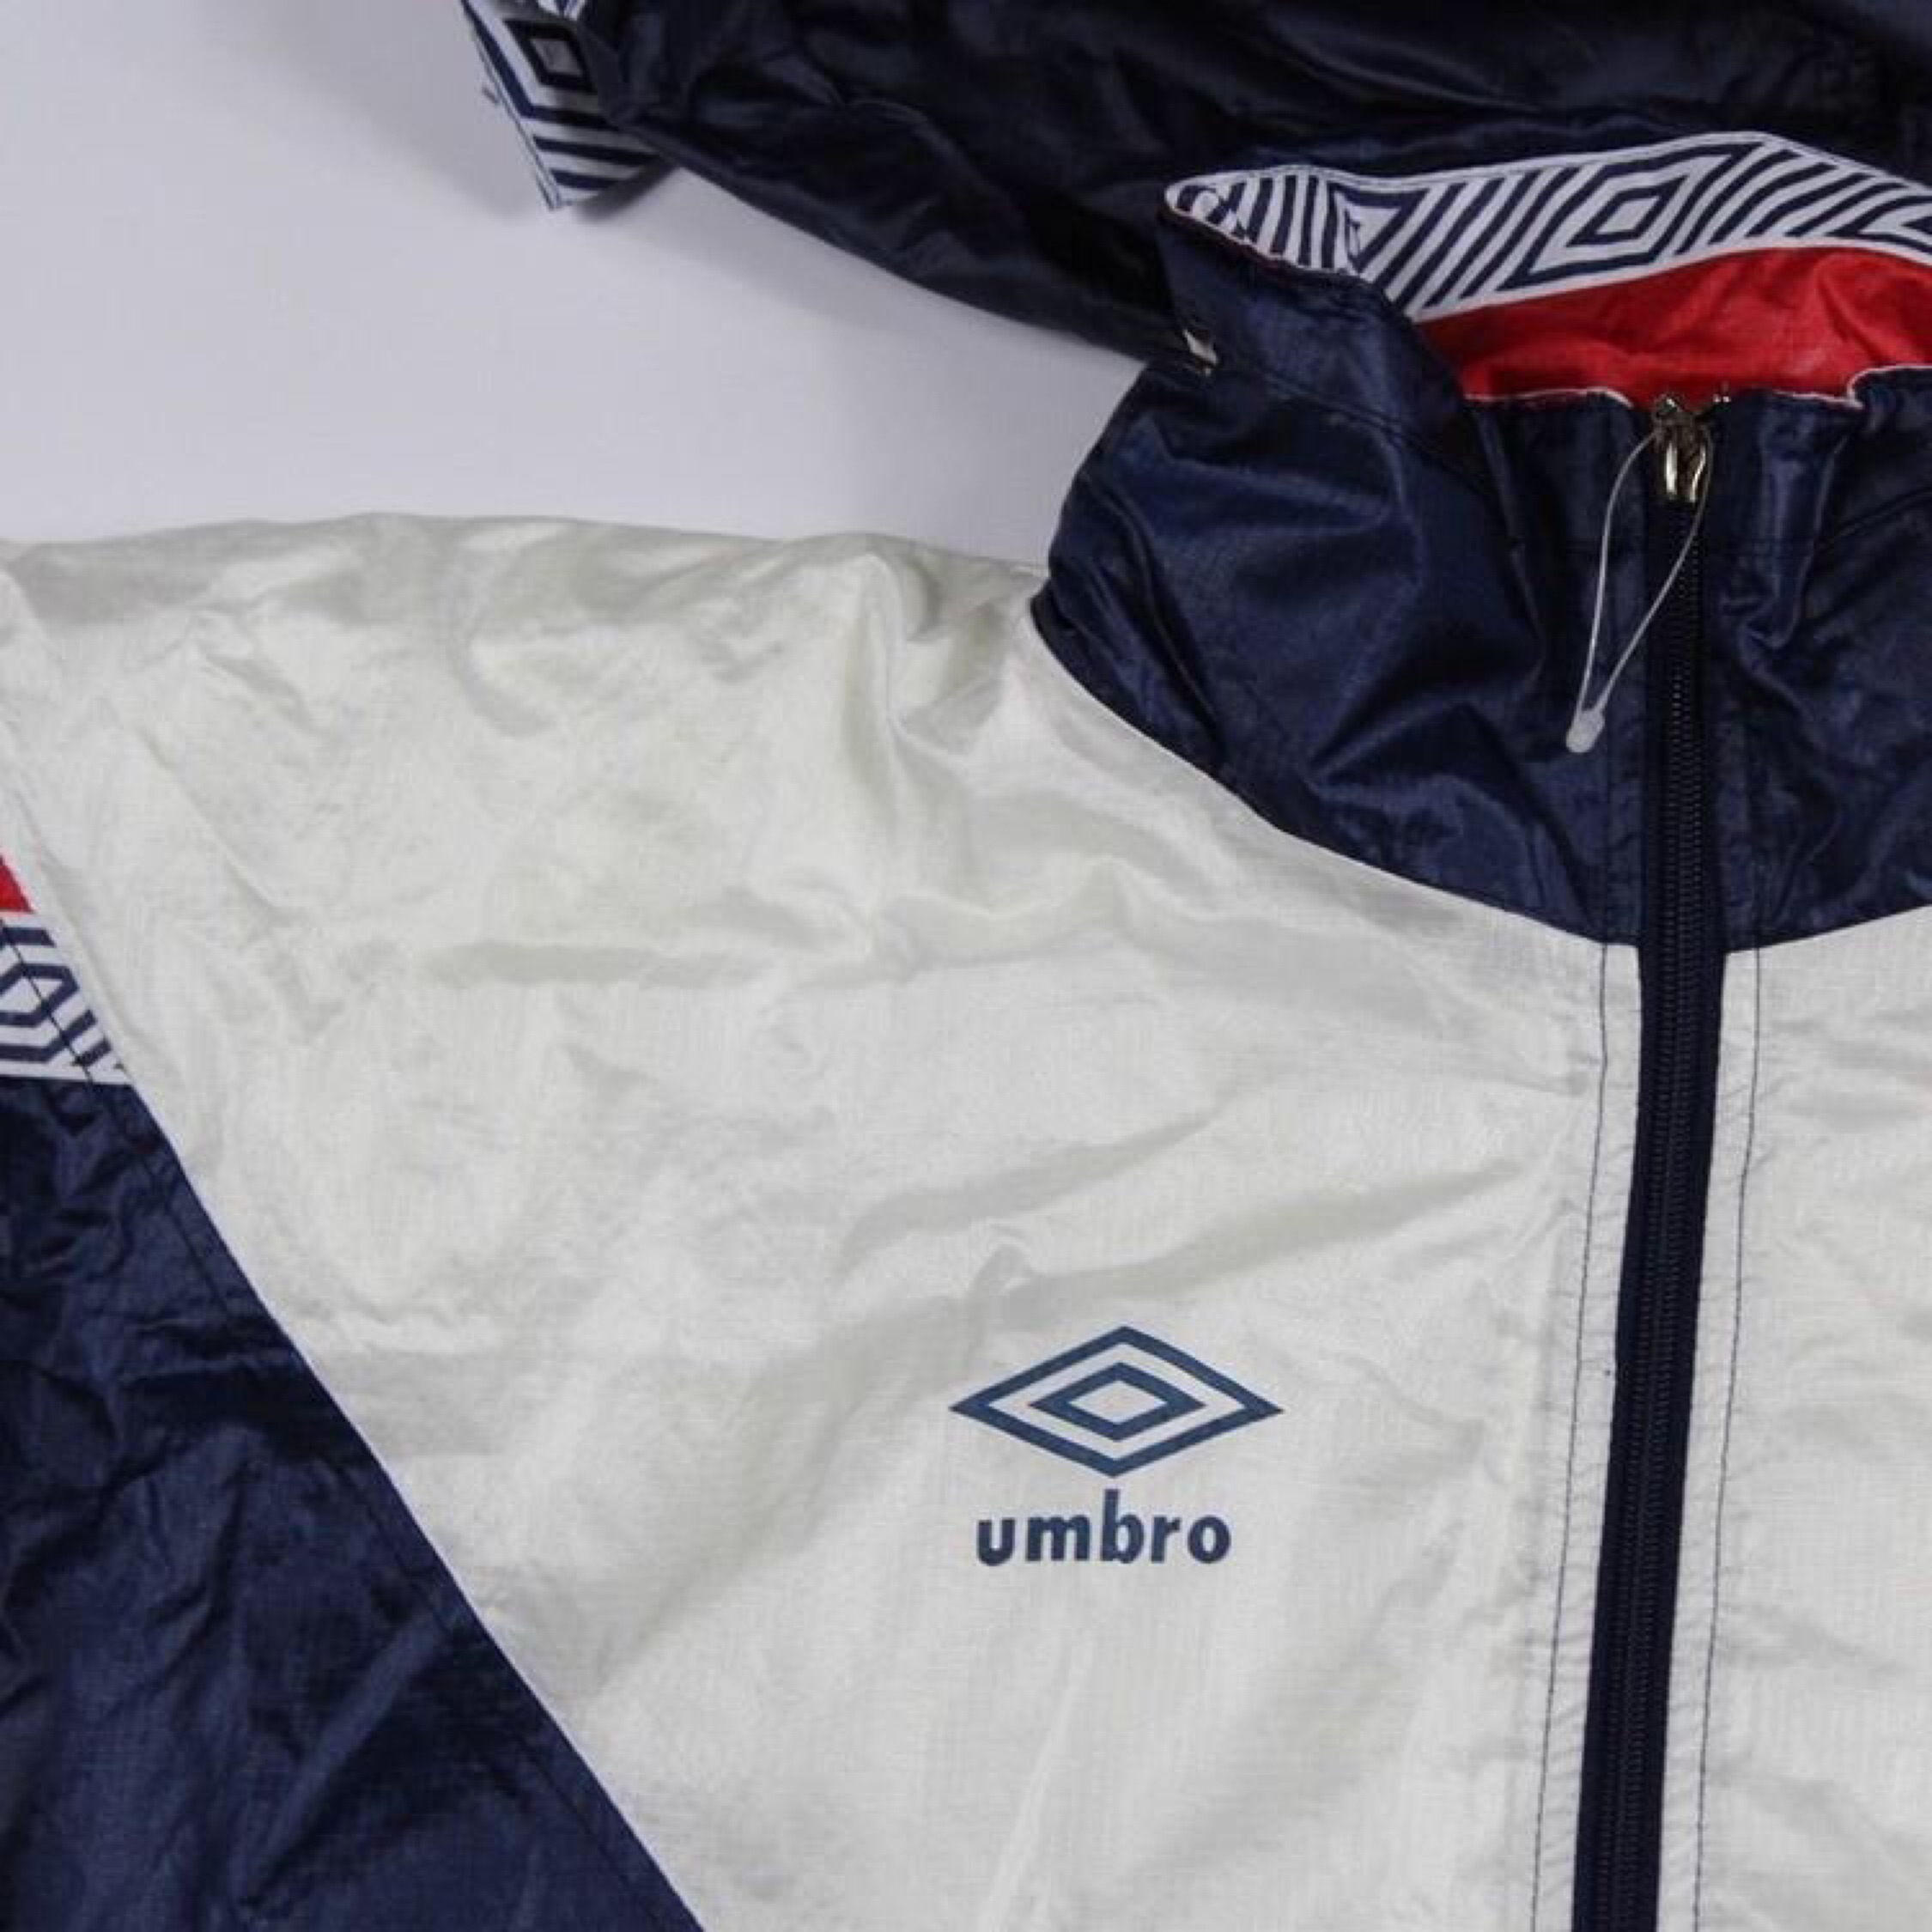 umbro hooded jacket